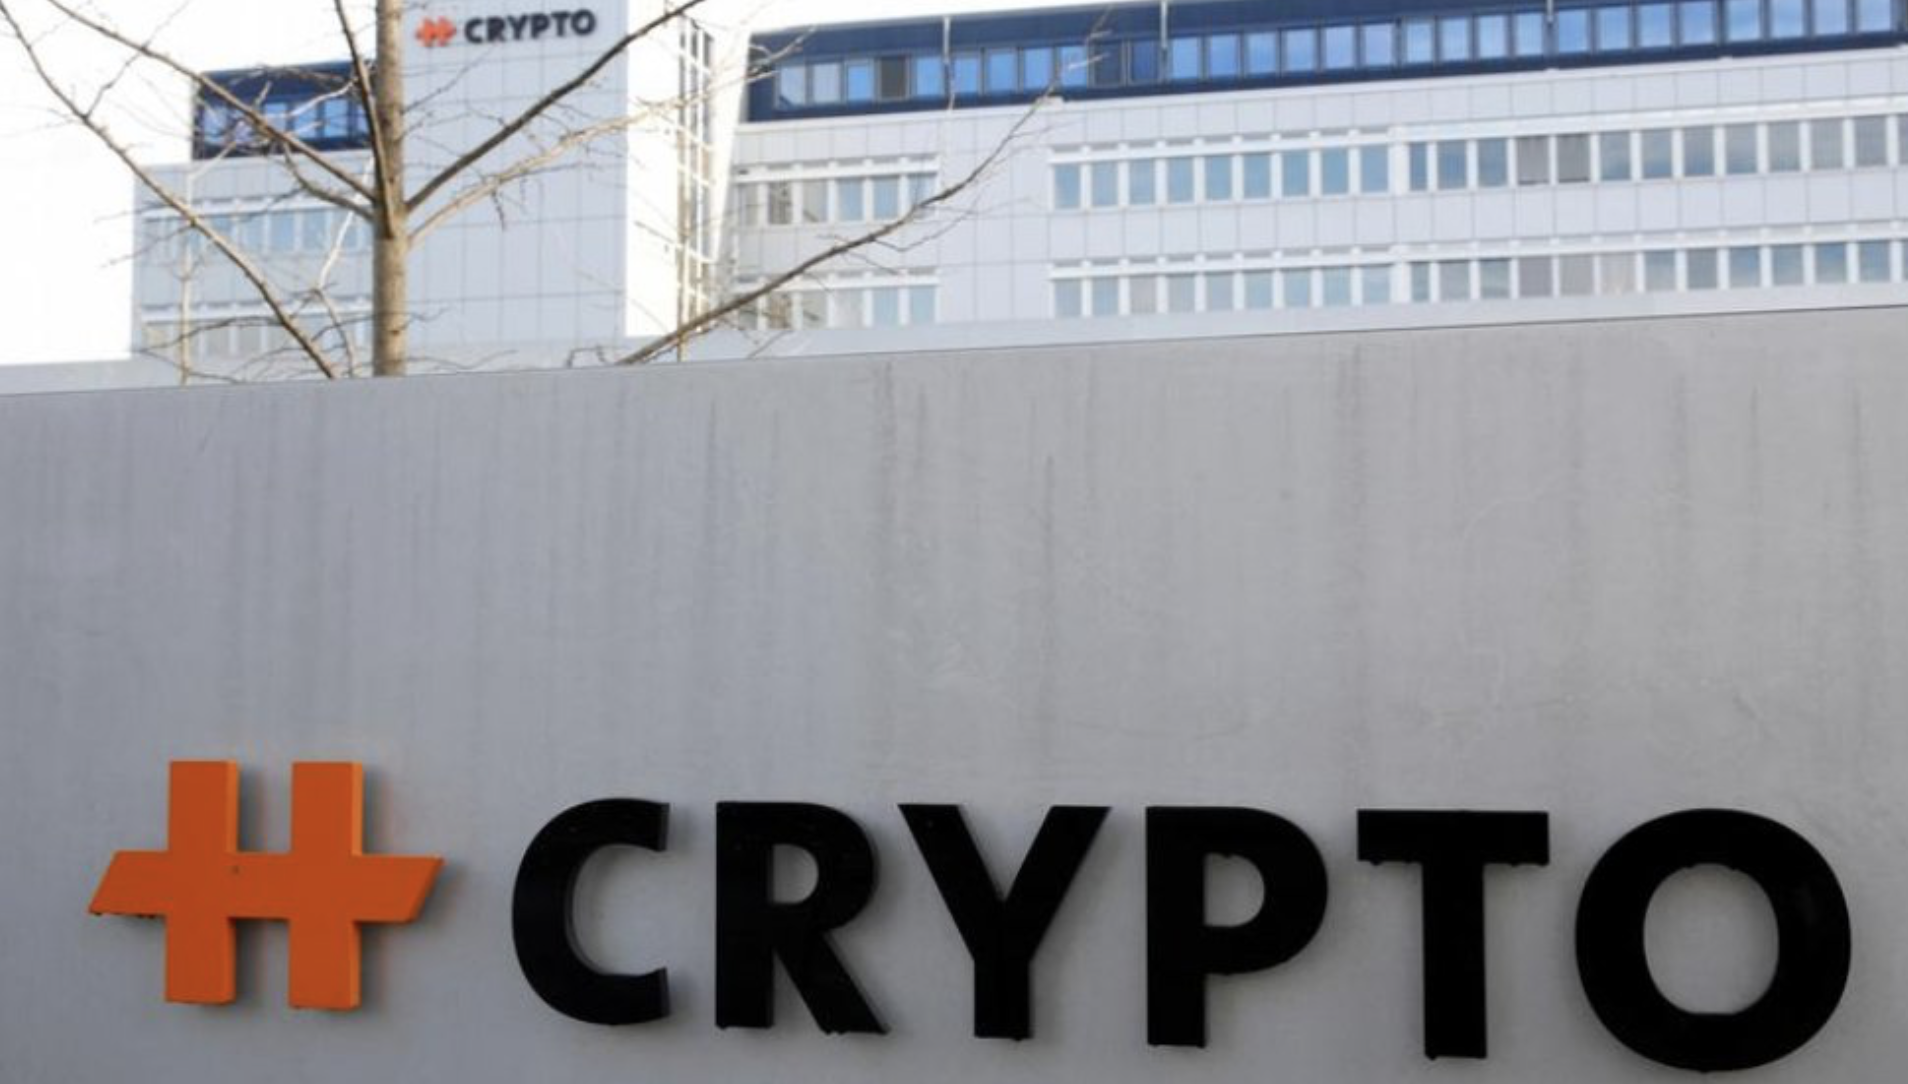 image of crypto AG building and logo